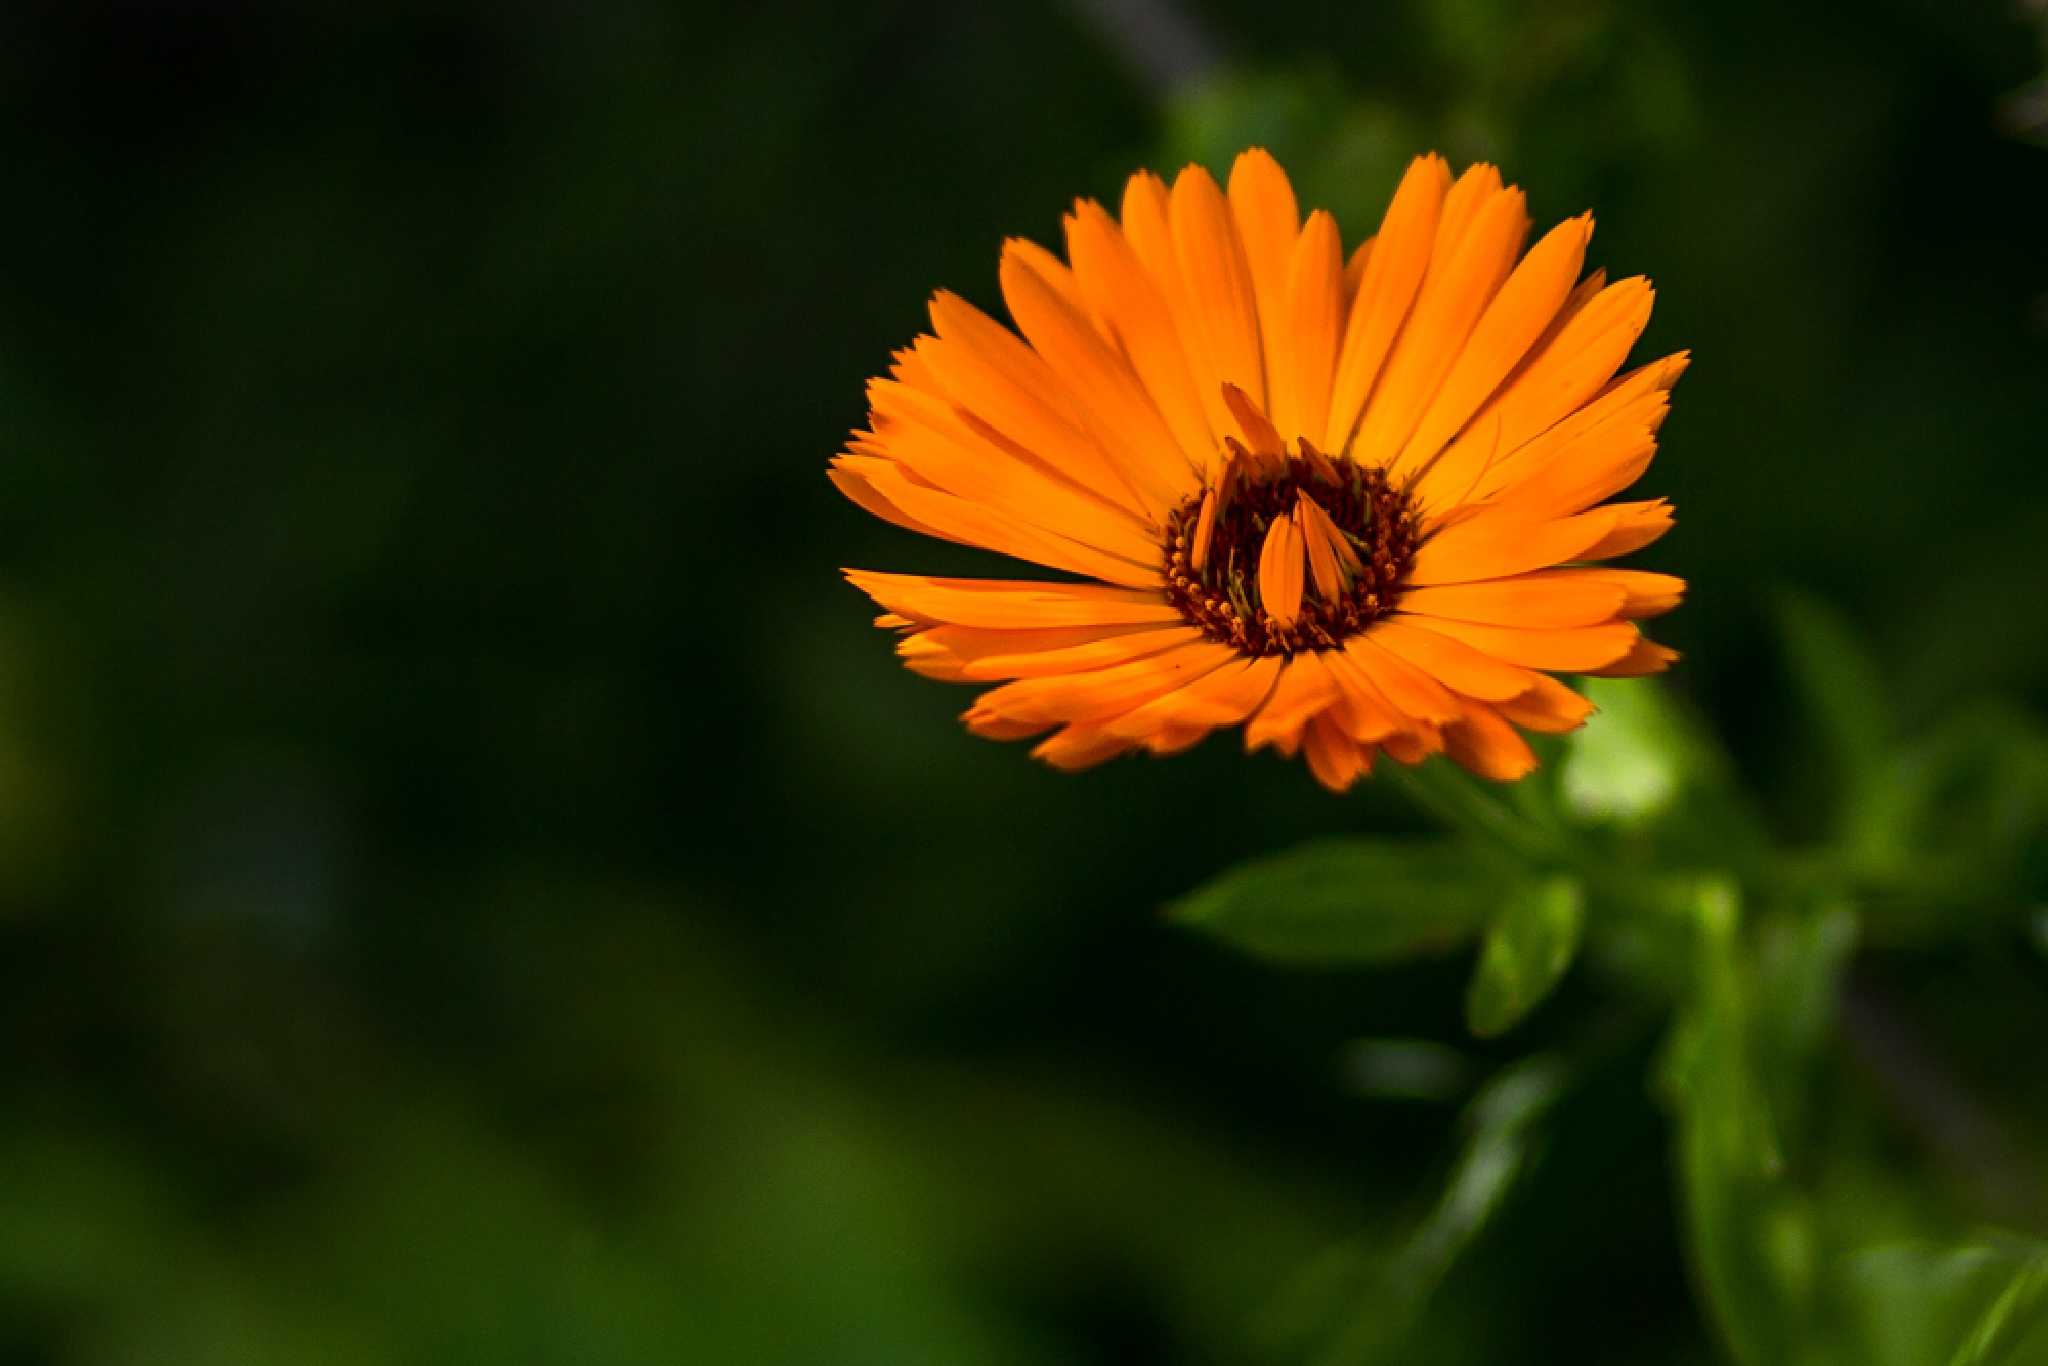 my little orange flower by Ronny Andries